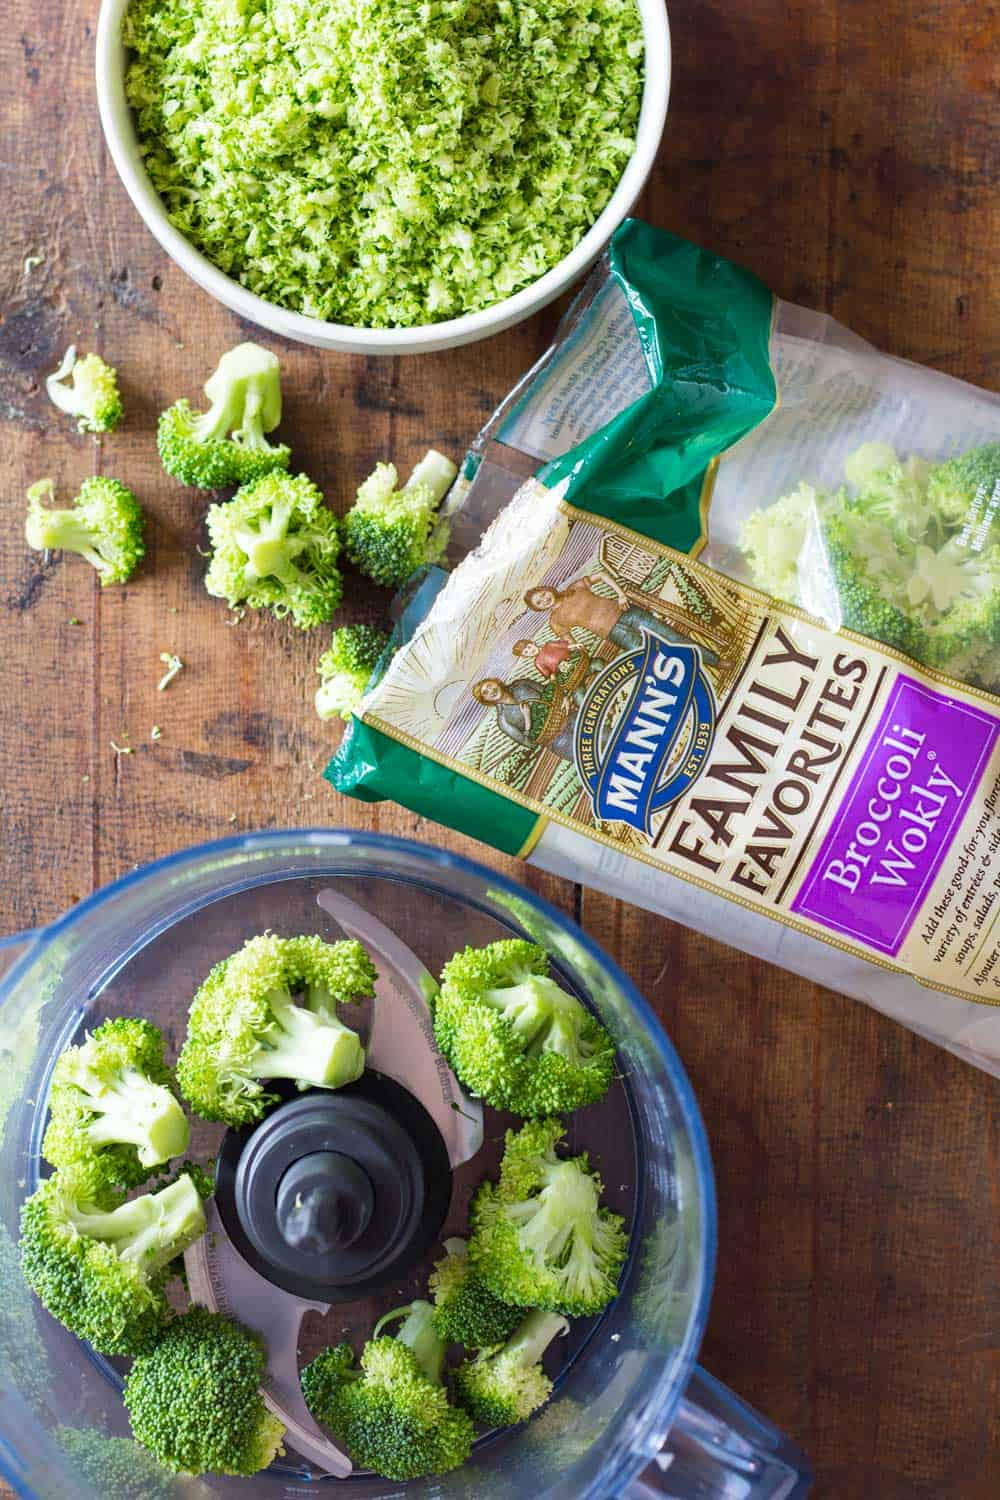 Bowl of broccoli rice, an opened bag of Mann's broccoli florets, and some broccoli florets shown inside a food processor.